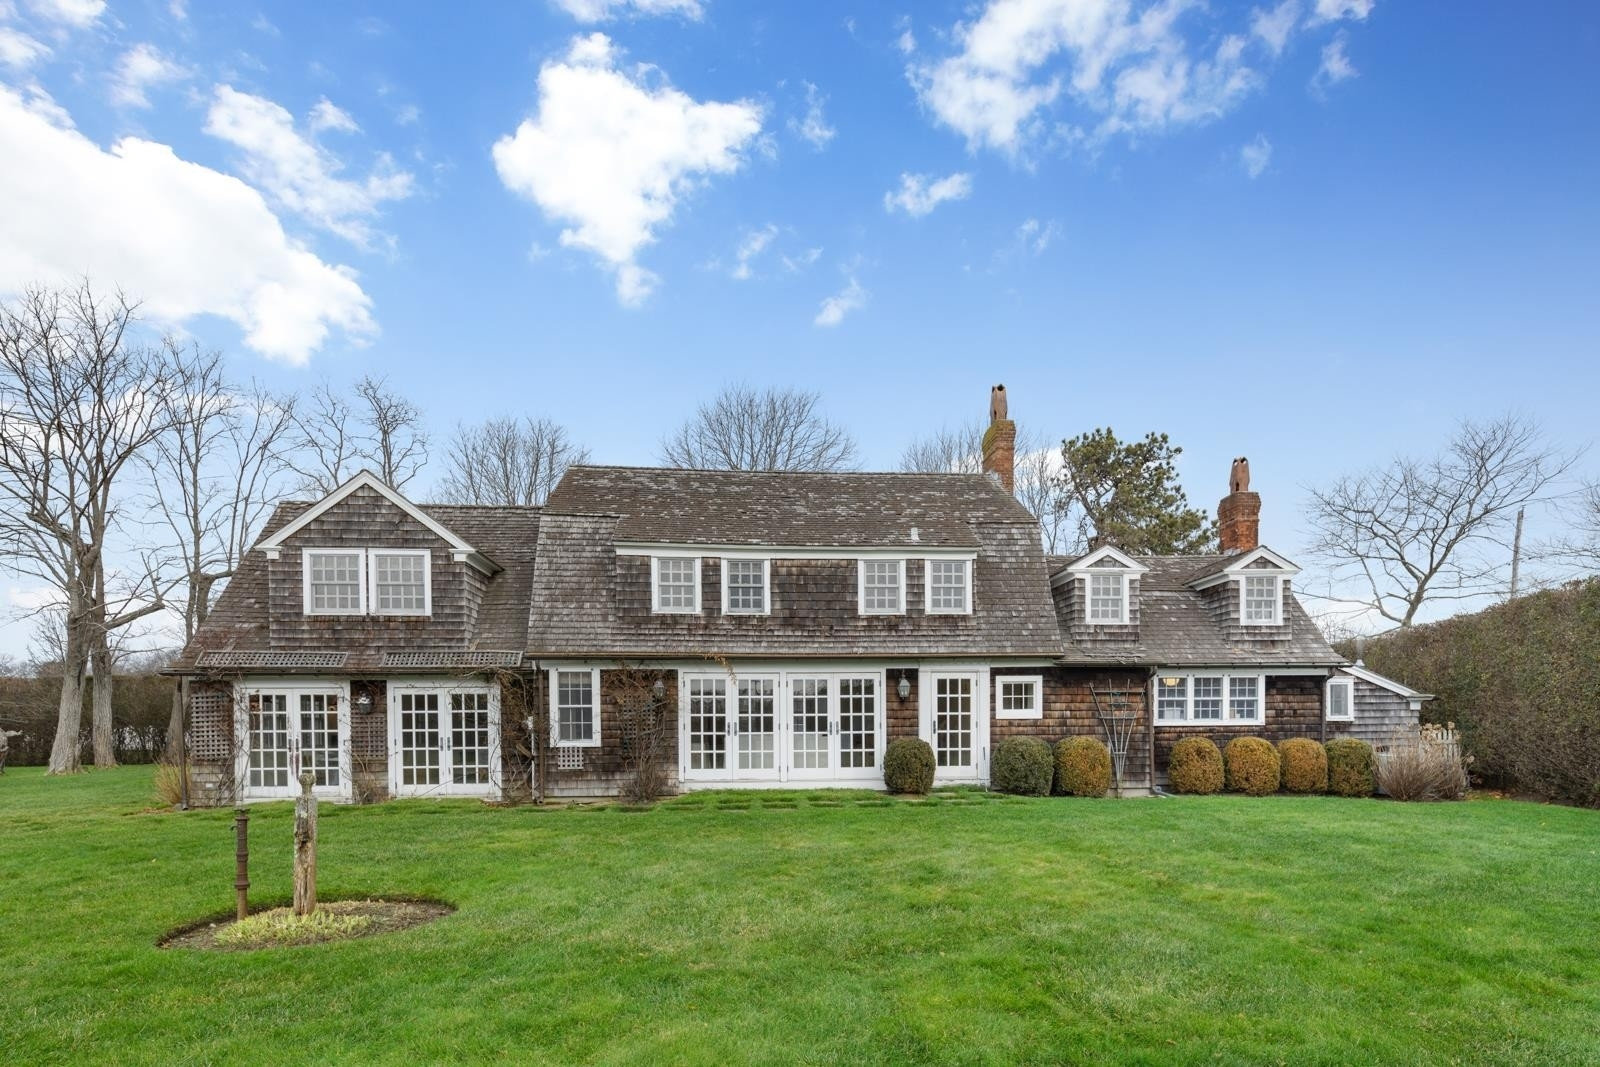 Property à Quogue Village, NY 11959